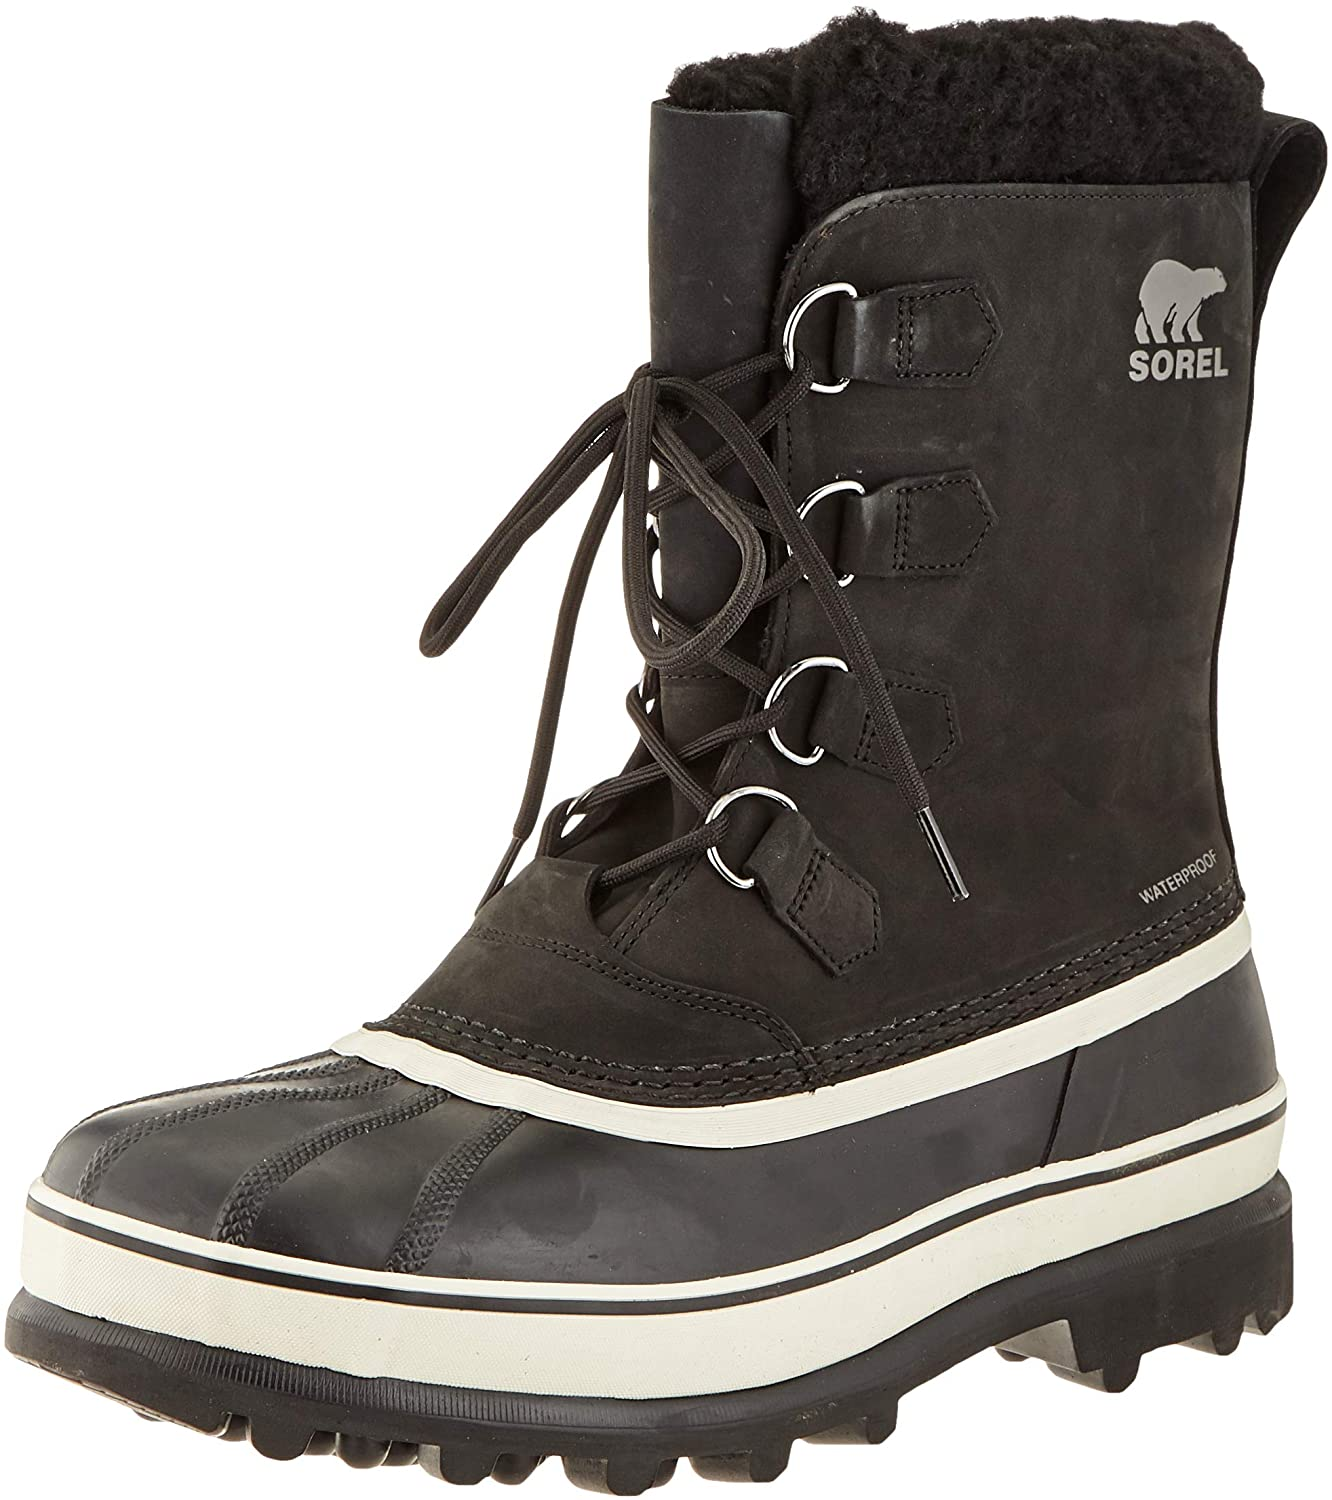 Sorel Mens Snow Winter Boots, Black Dark Stone, 40